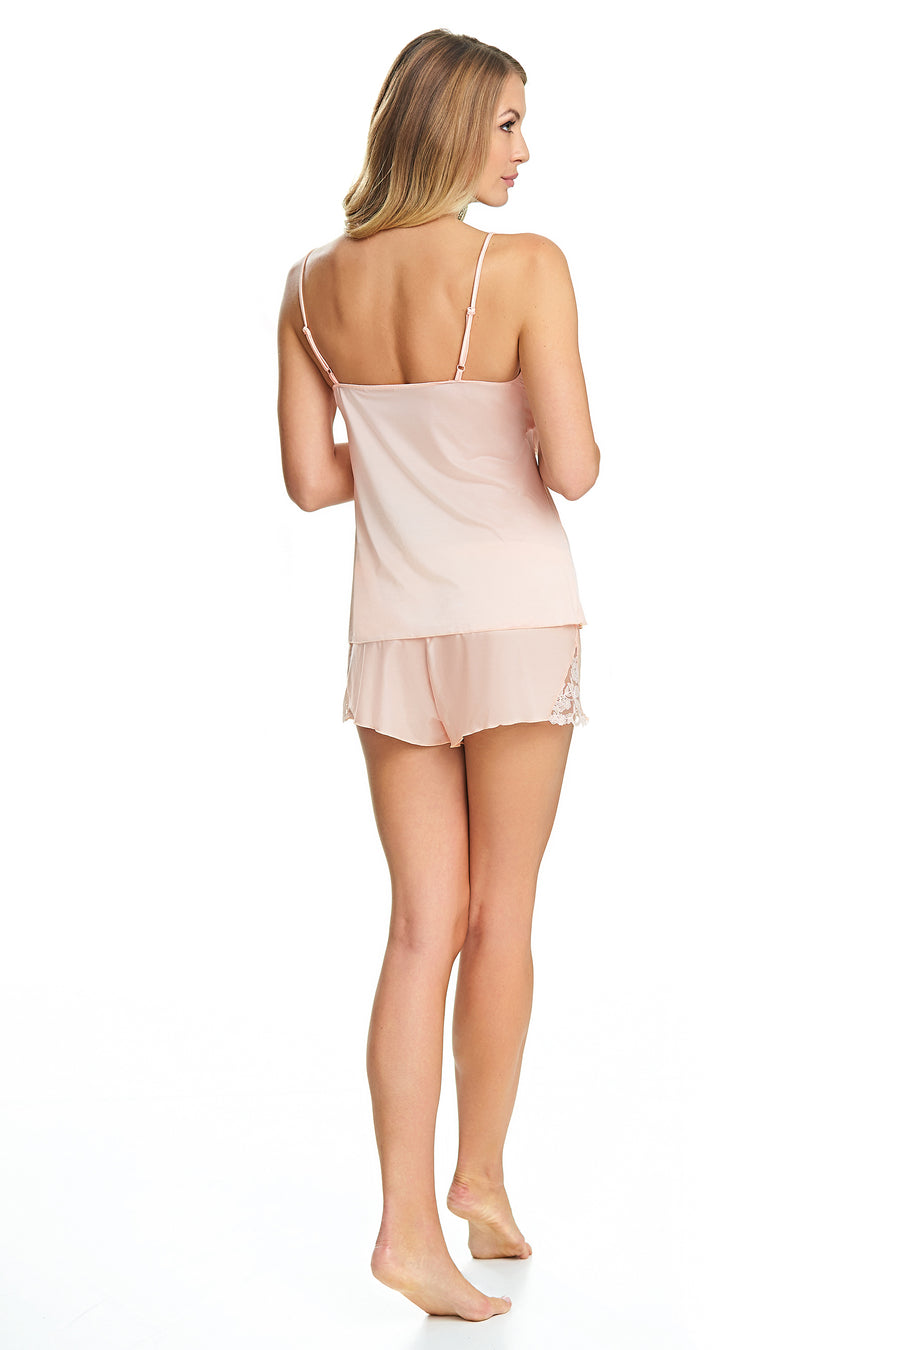 Fantasie - Sienna Tea Rose Camisole